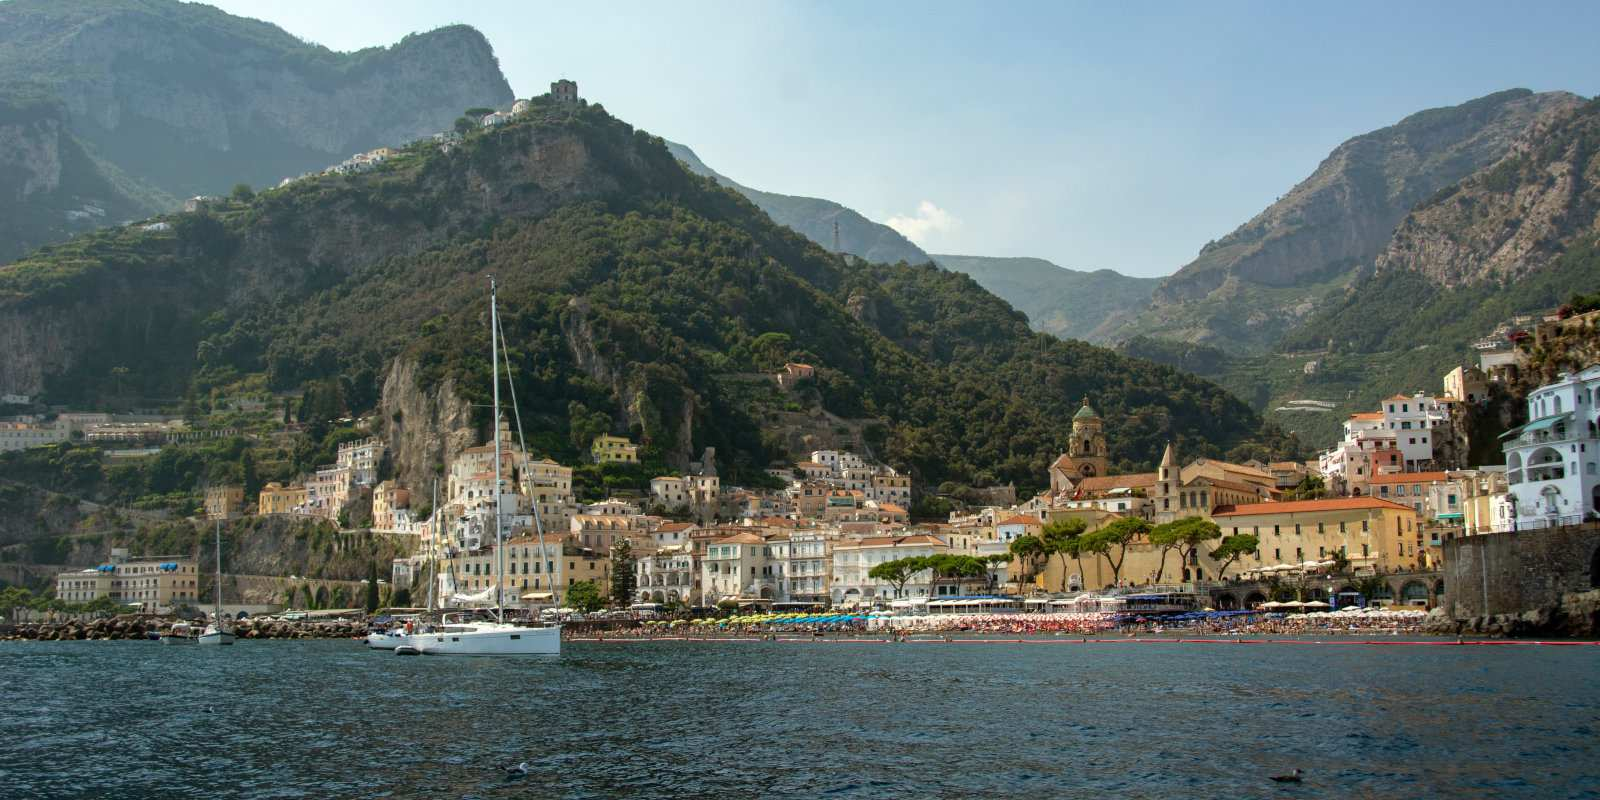 The Amalfi Coast is a beautiful and romantic place to visit for gay travellers